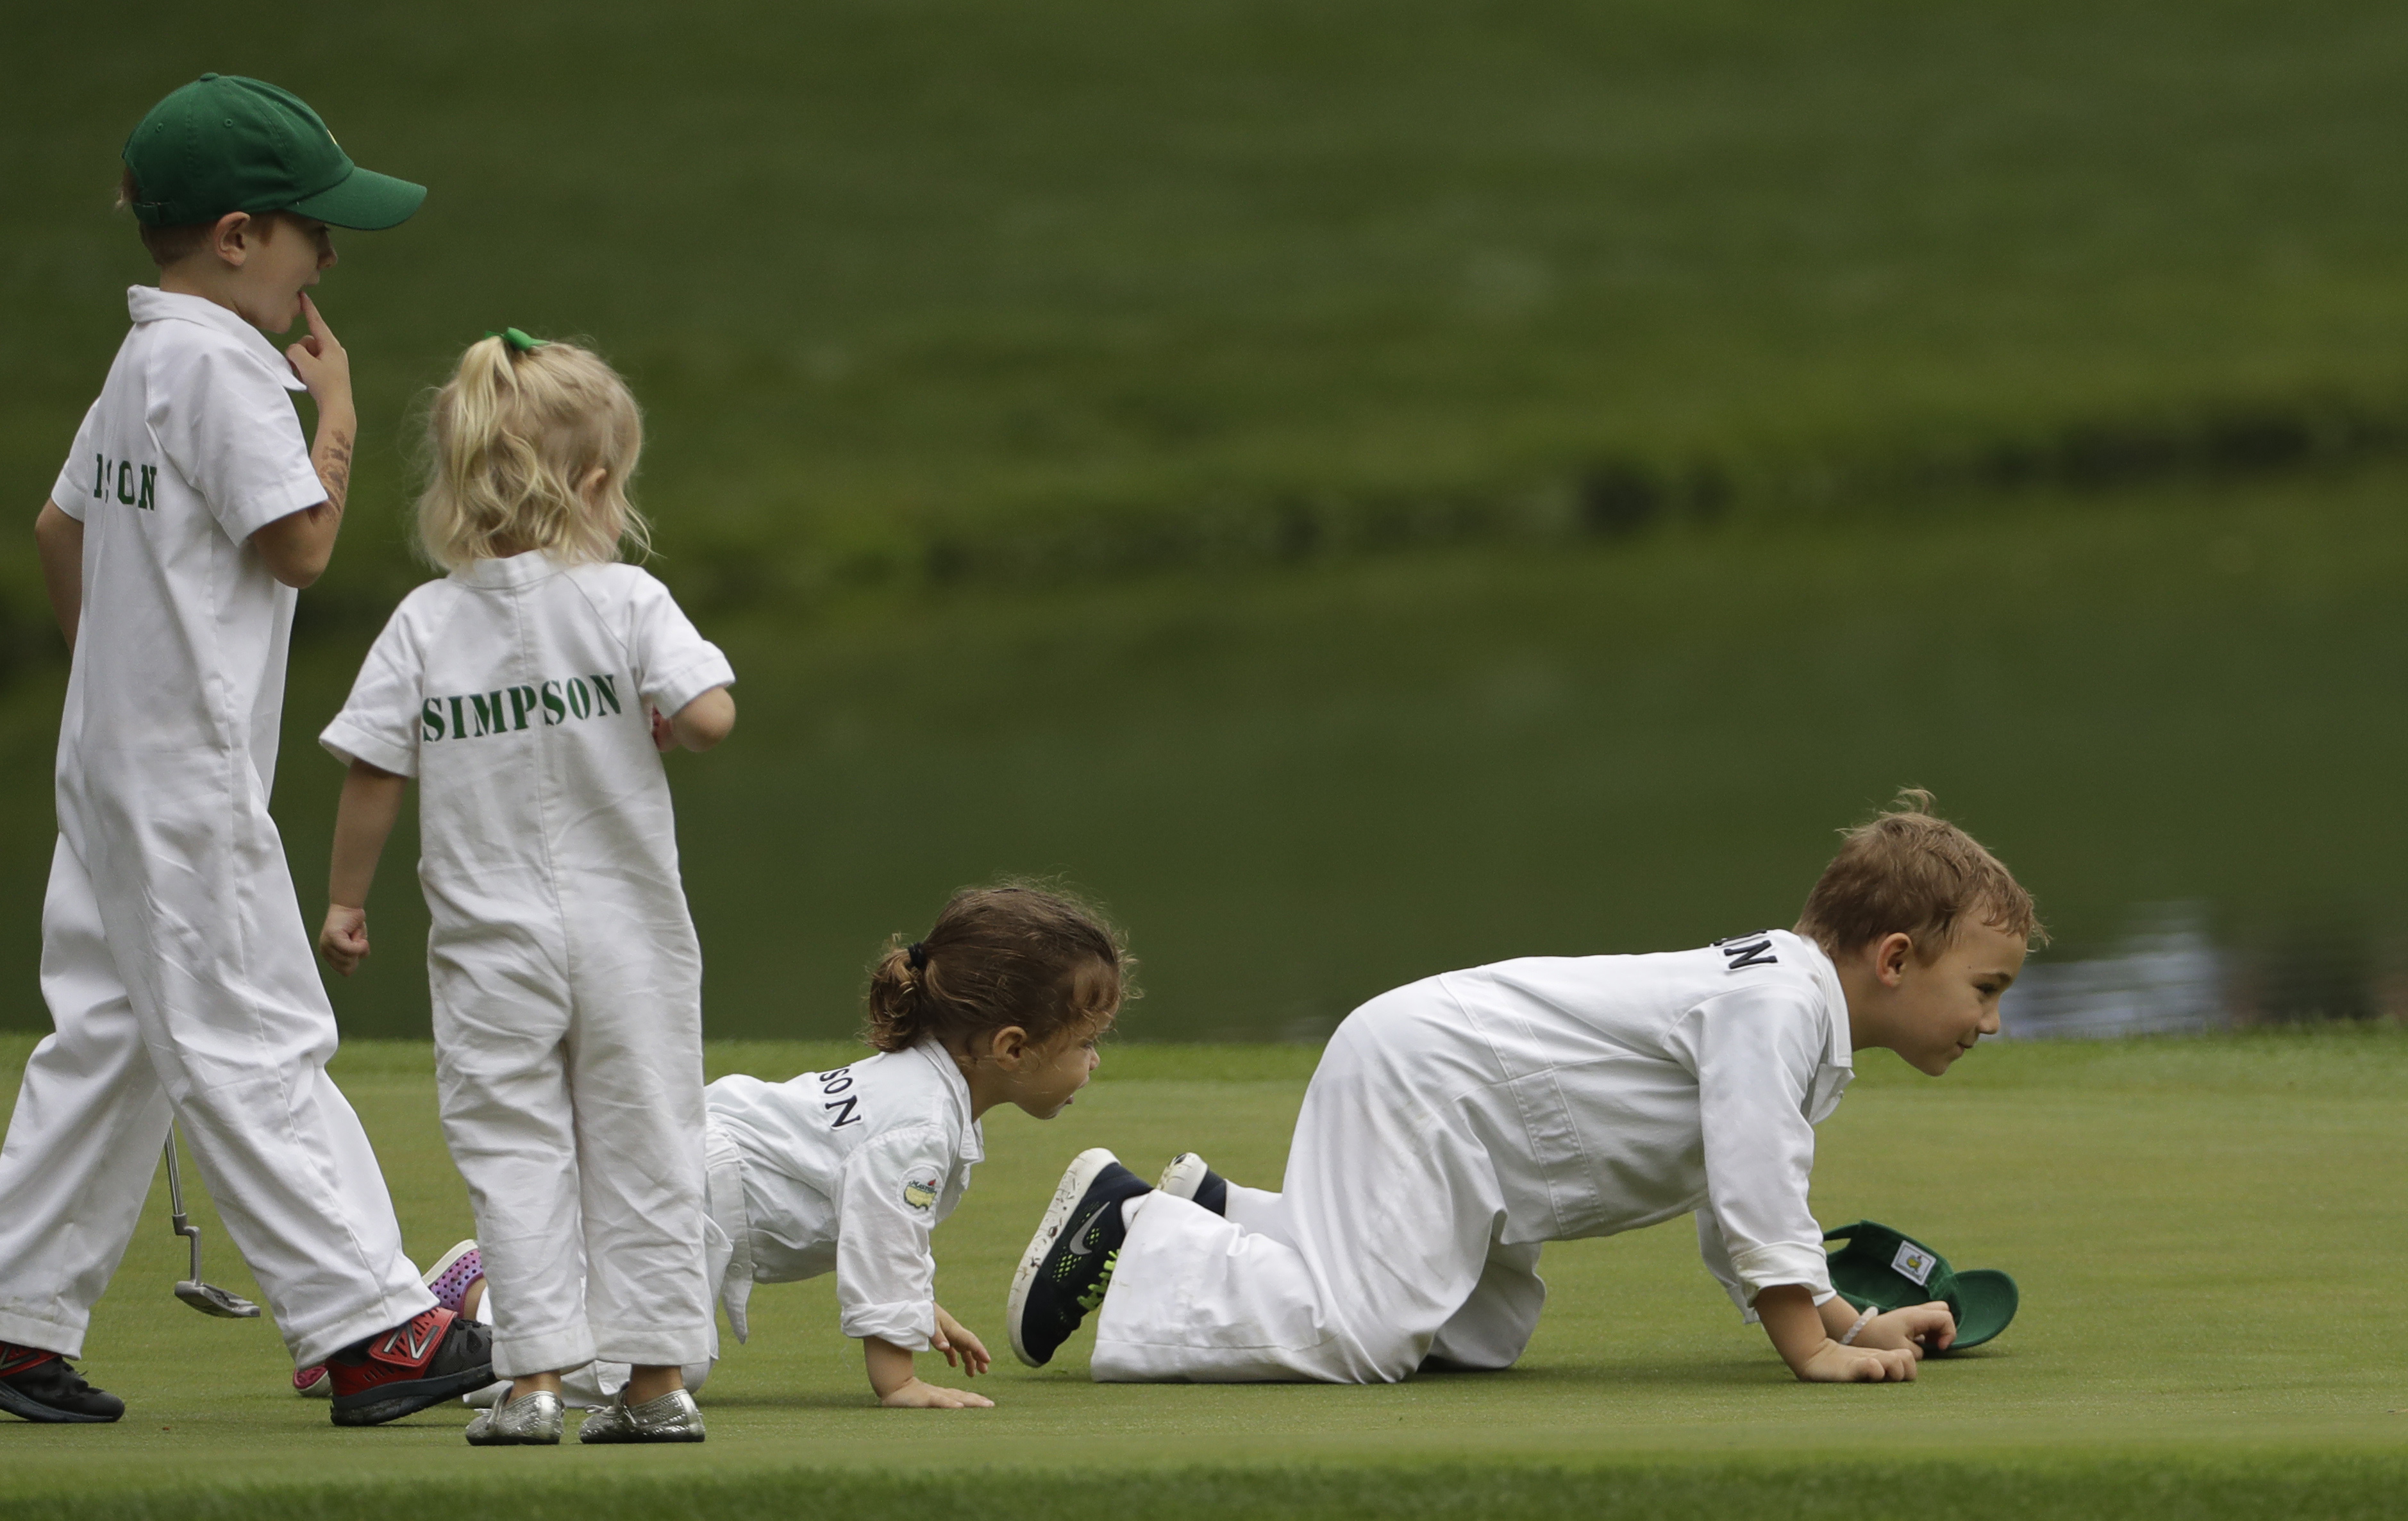 From left, James Simpson, Wyndham Rose Simpson, Dakota Watson and Caleb Watson watch as their fathers Bubba Watson and Webb Simpson play during the par three competition at the Masters golf tournament Wednesday, April 5, 2017, in Augusta, Ga. (AP Photo/Da